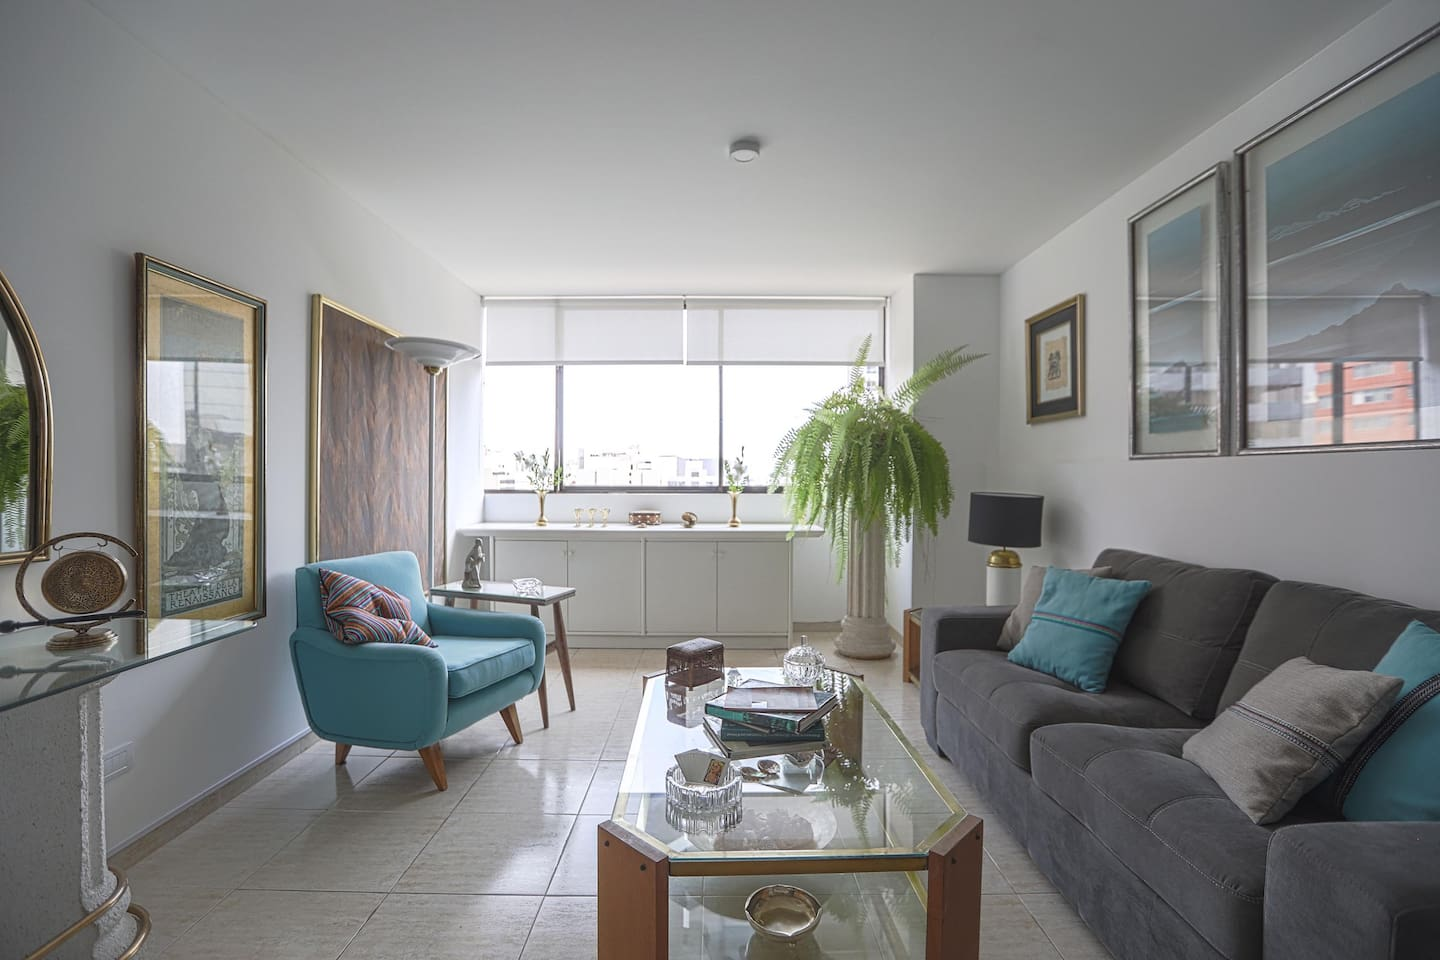 Living room. You can see the boulevard through the window, full with trees, benches where people take a rest, use their bikes along it, walk their dogs and so on. To the right is the sofa that turns into a double bed.